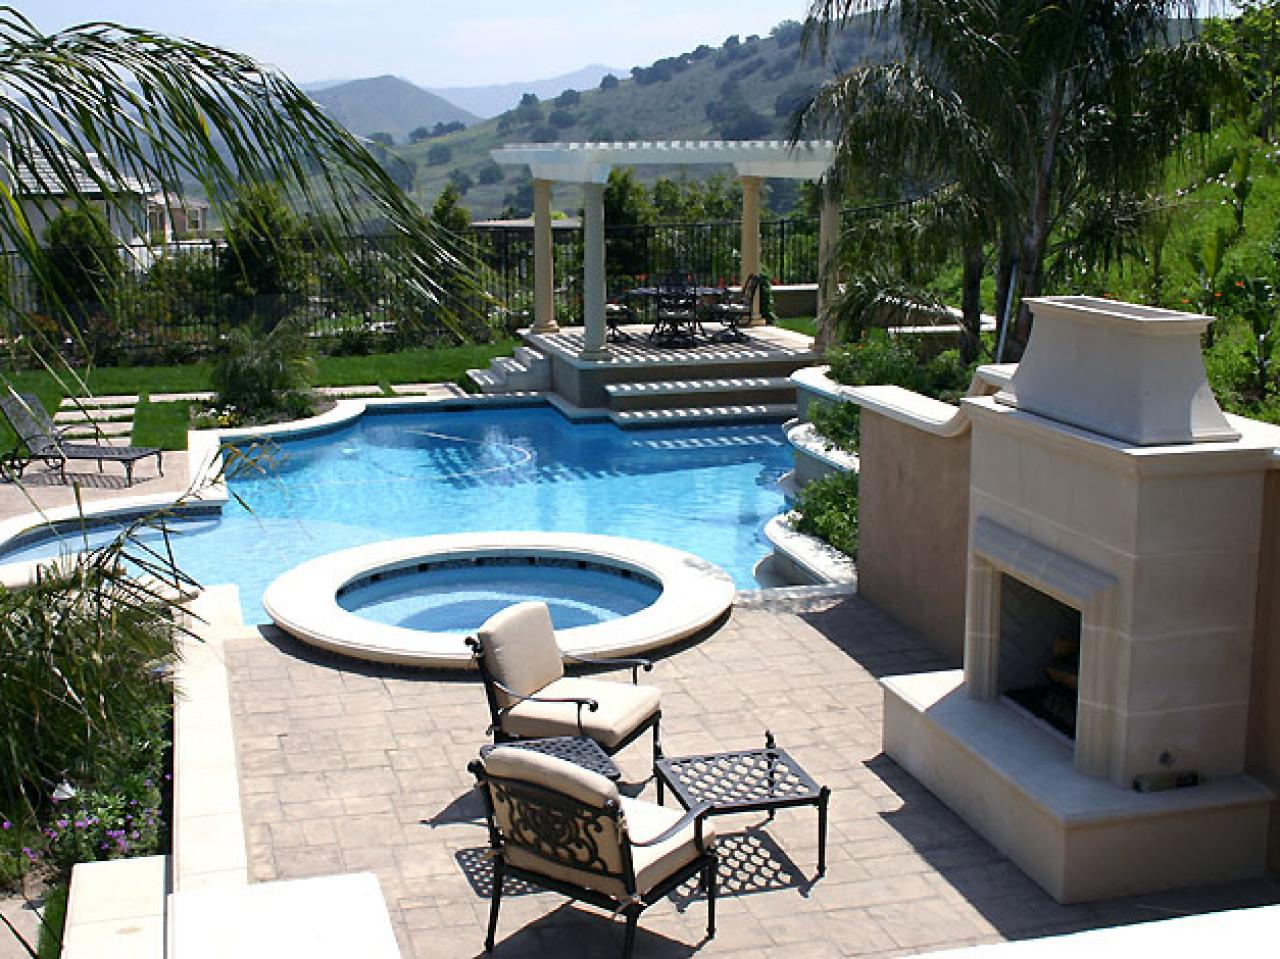 water_feature_circular_pool.jpg.rend.hgtvcom.1280.960